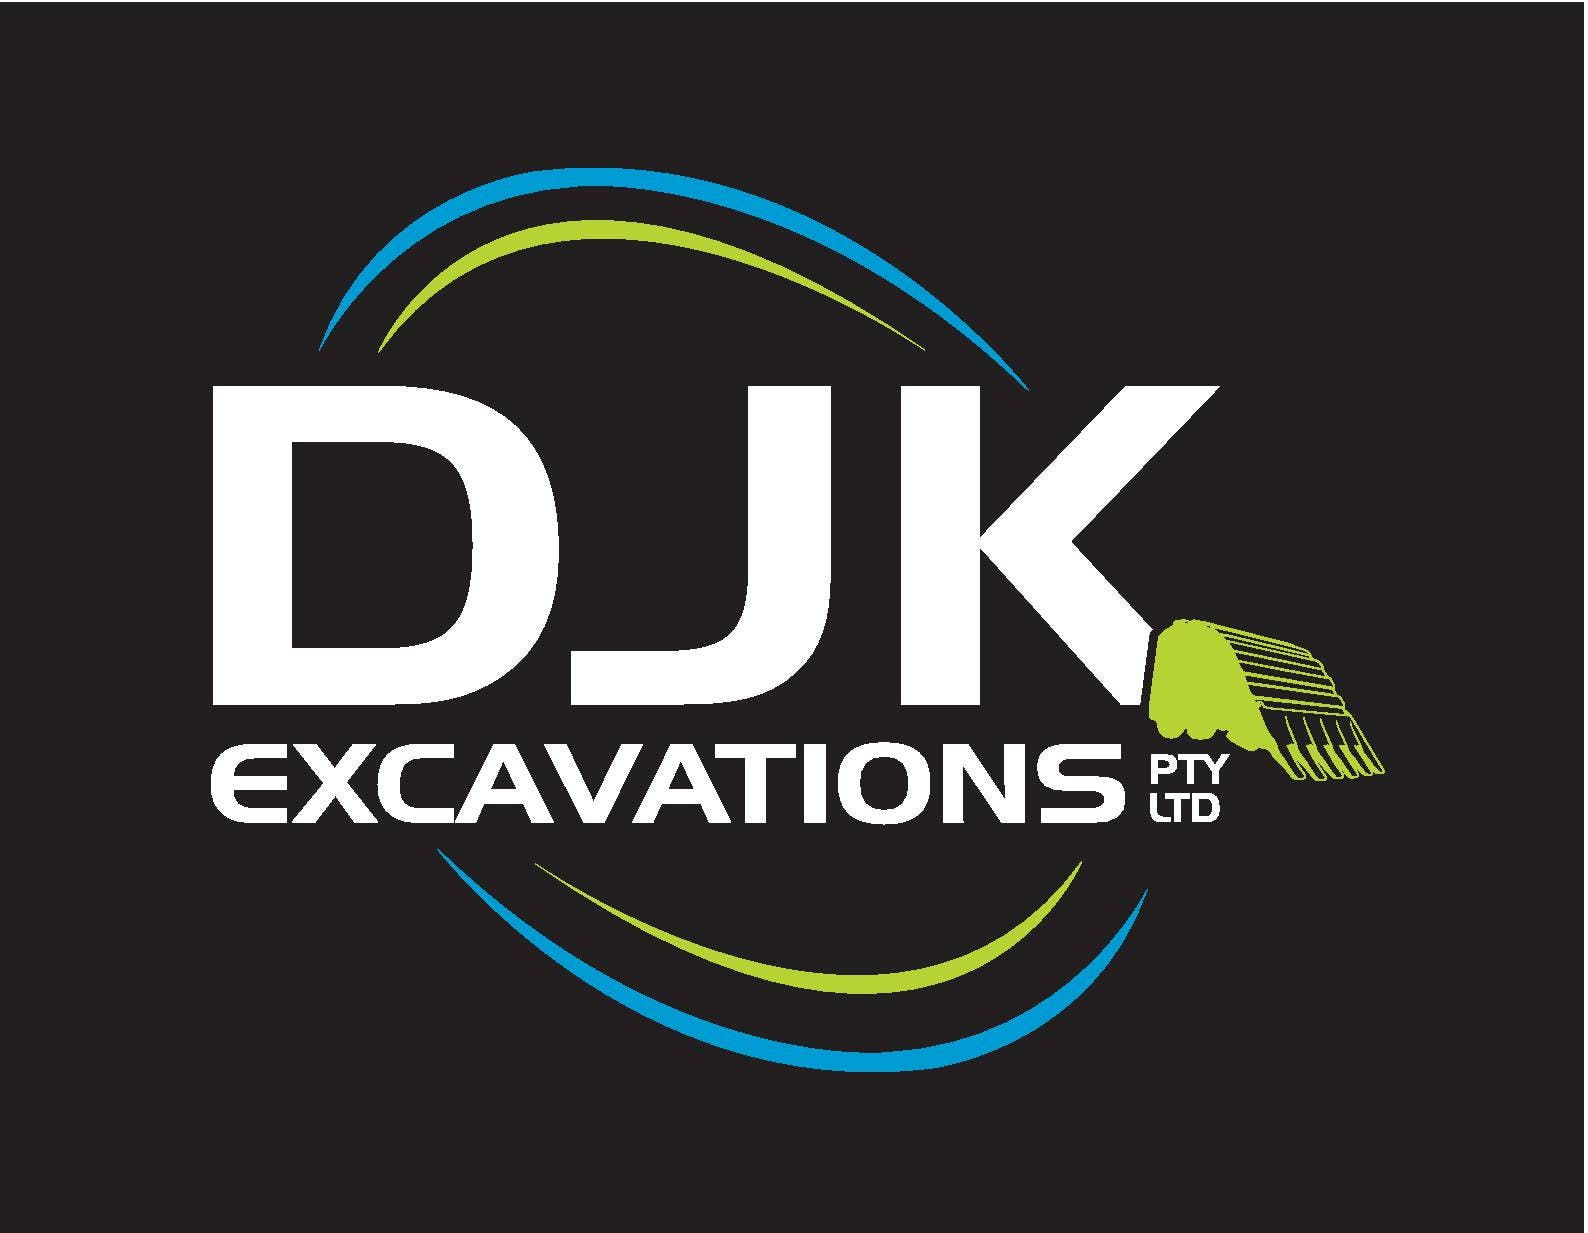 DJK Excavations PTY LTD